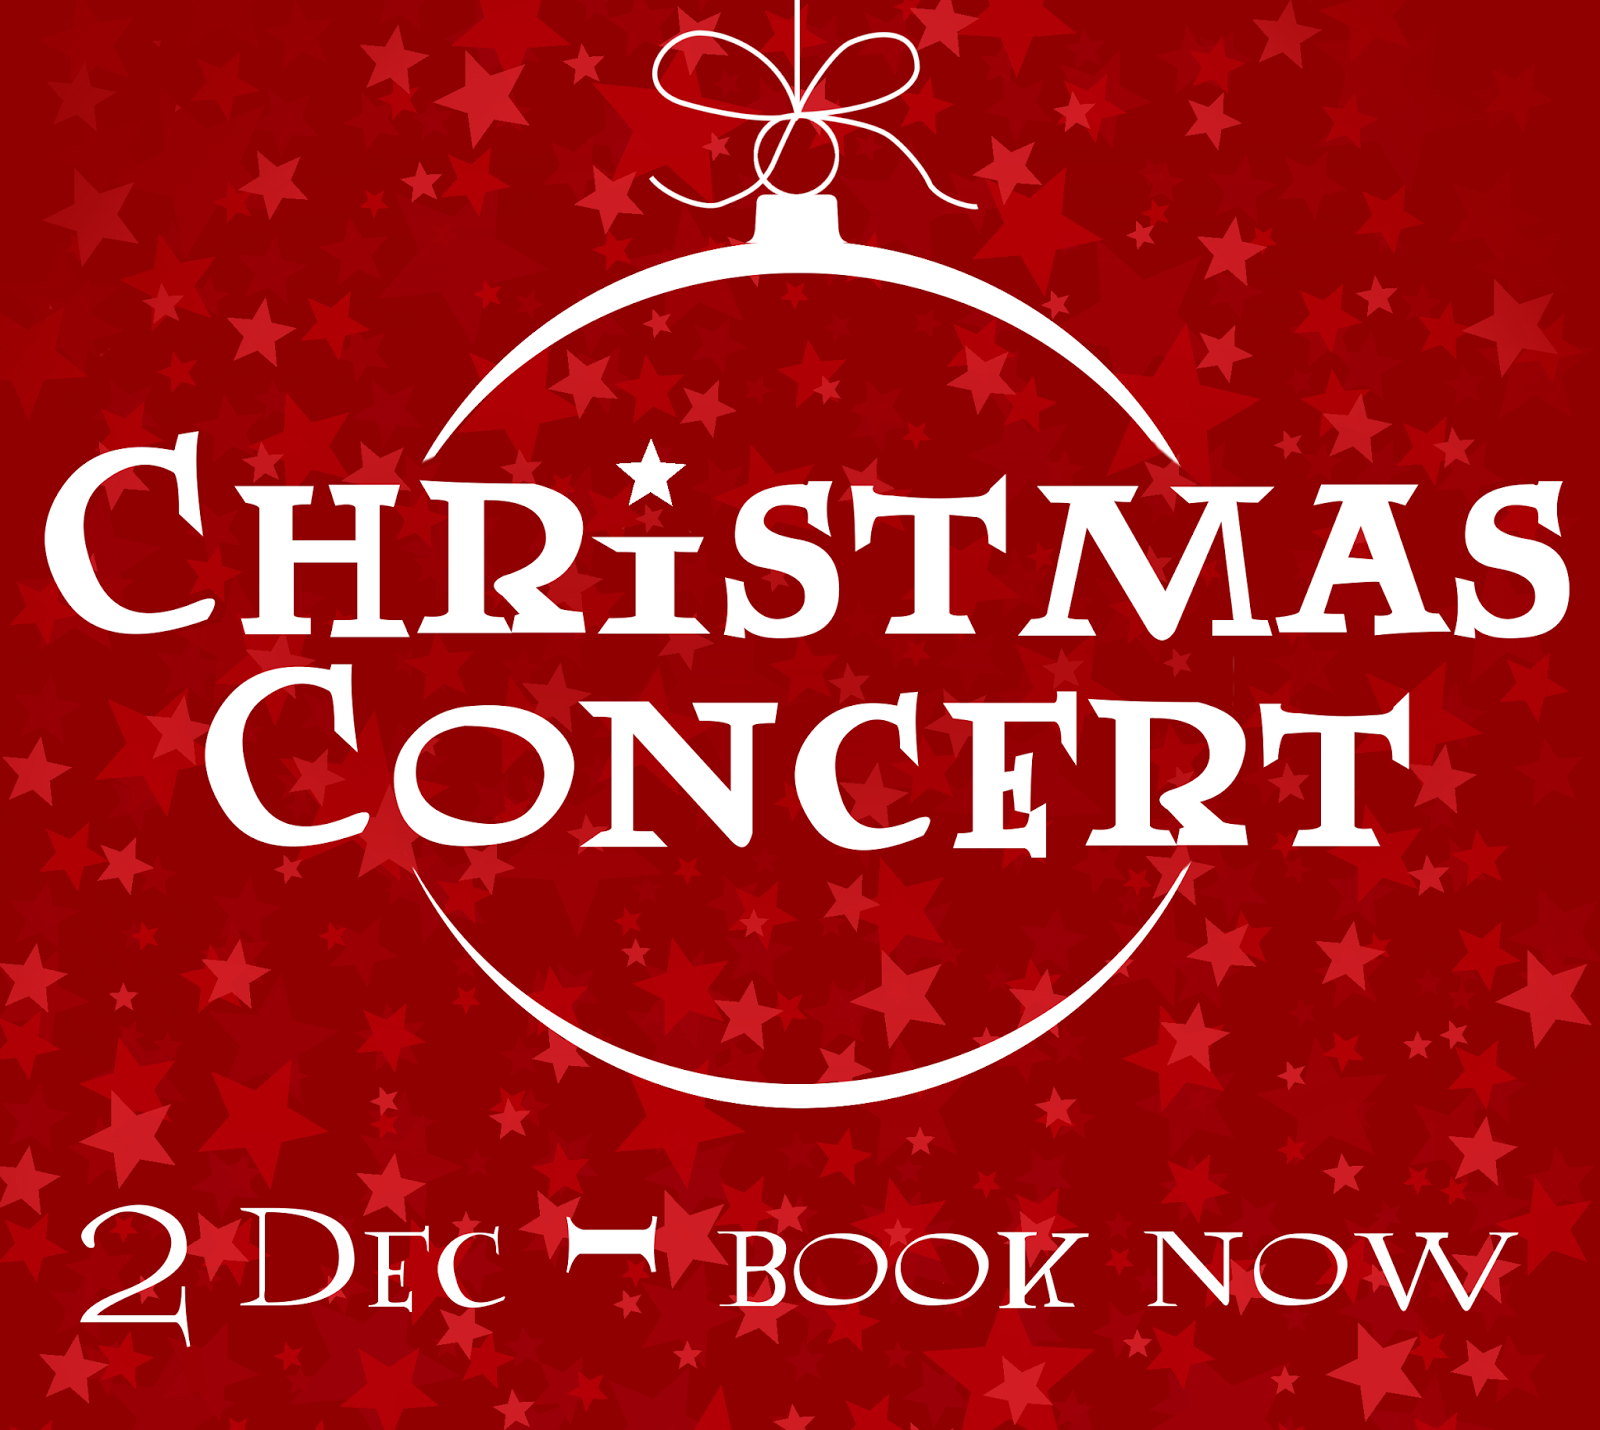 Christmas Concert - 2nd December - Book Now!